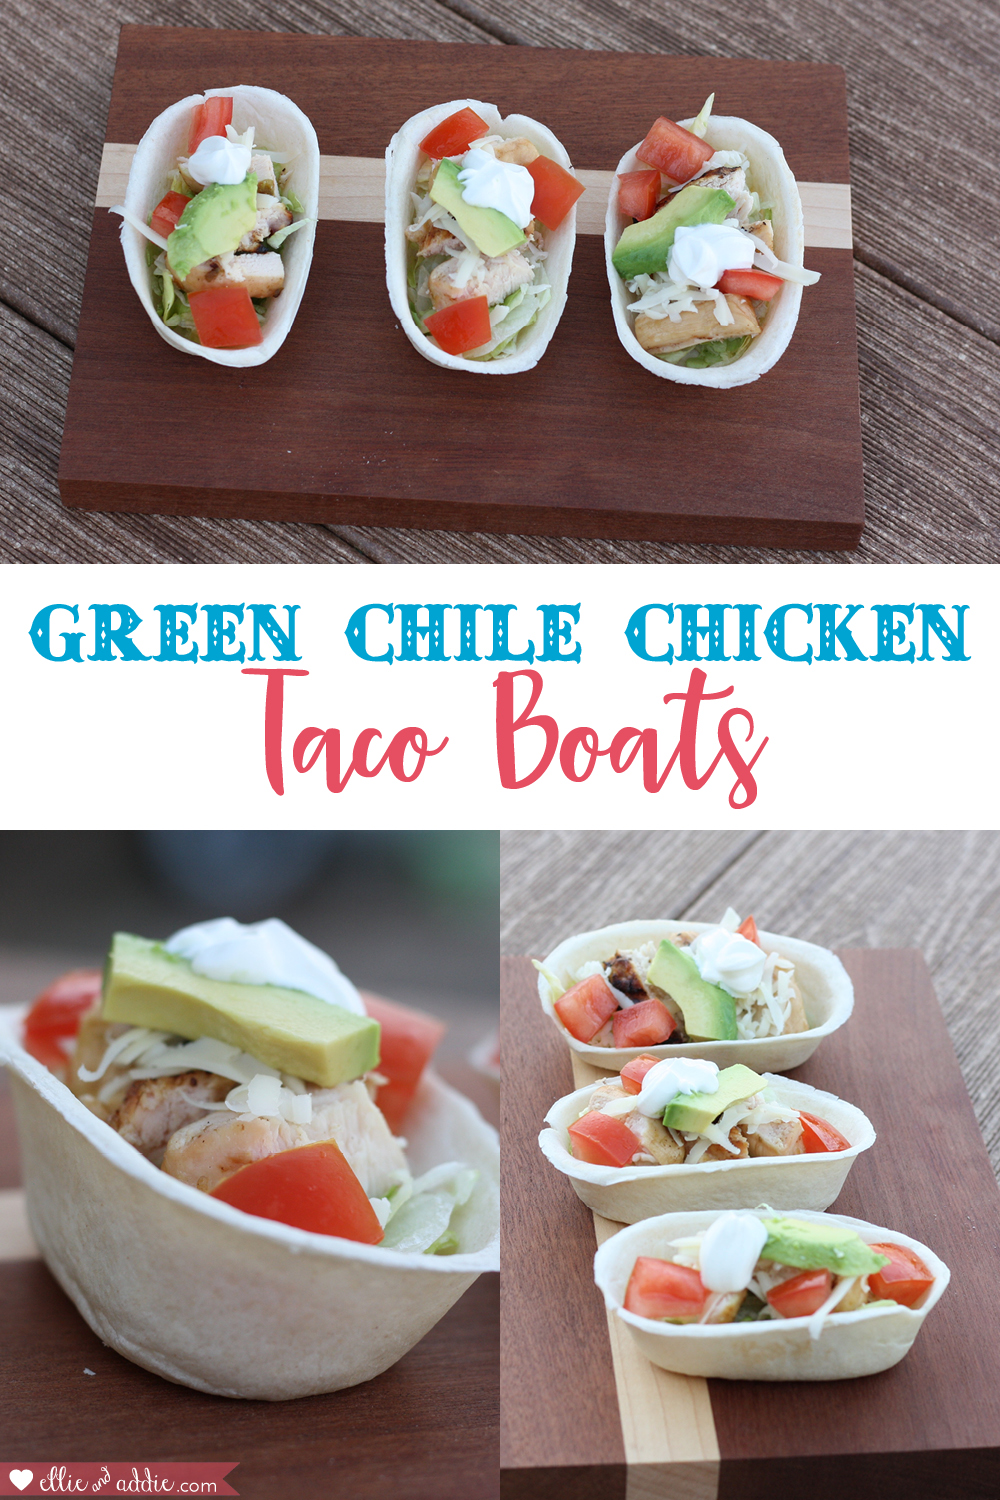 Green Chile Chicken Tacos Boats | Ellie And Addie